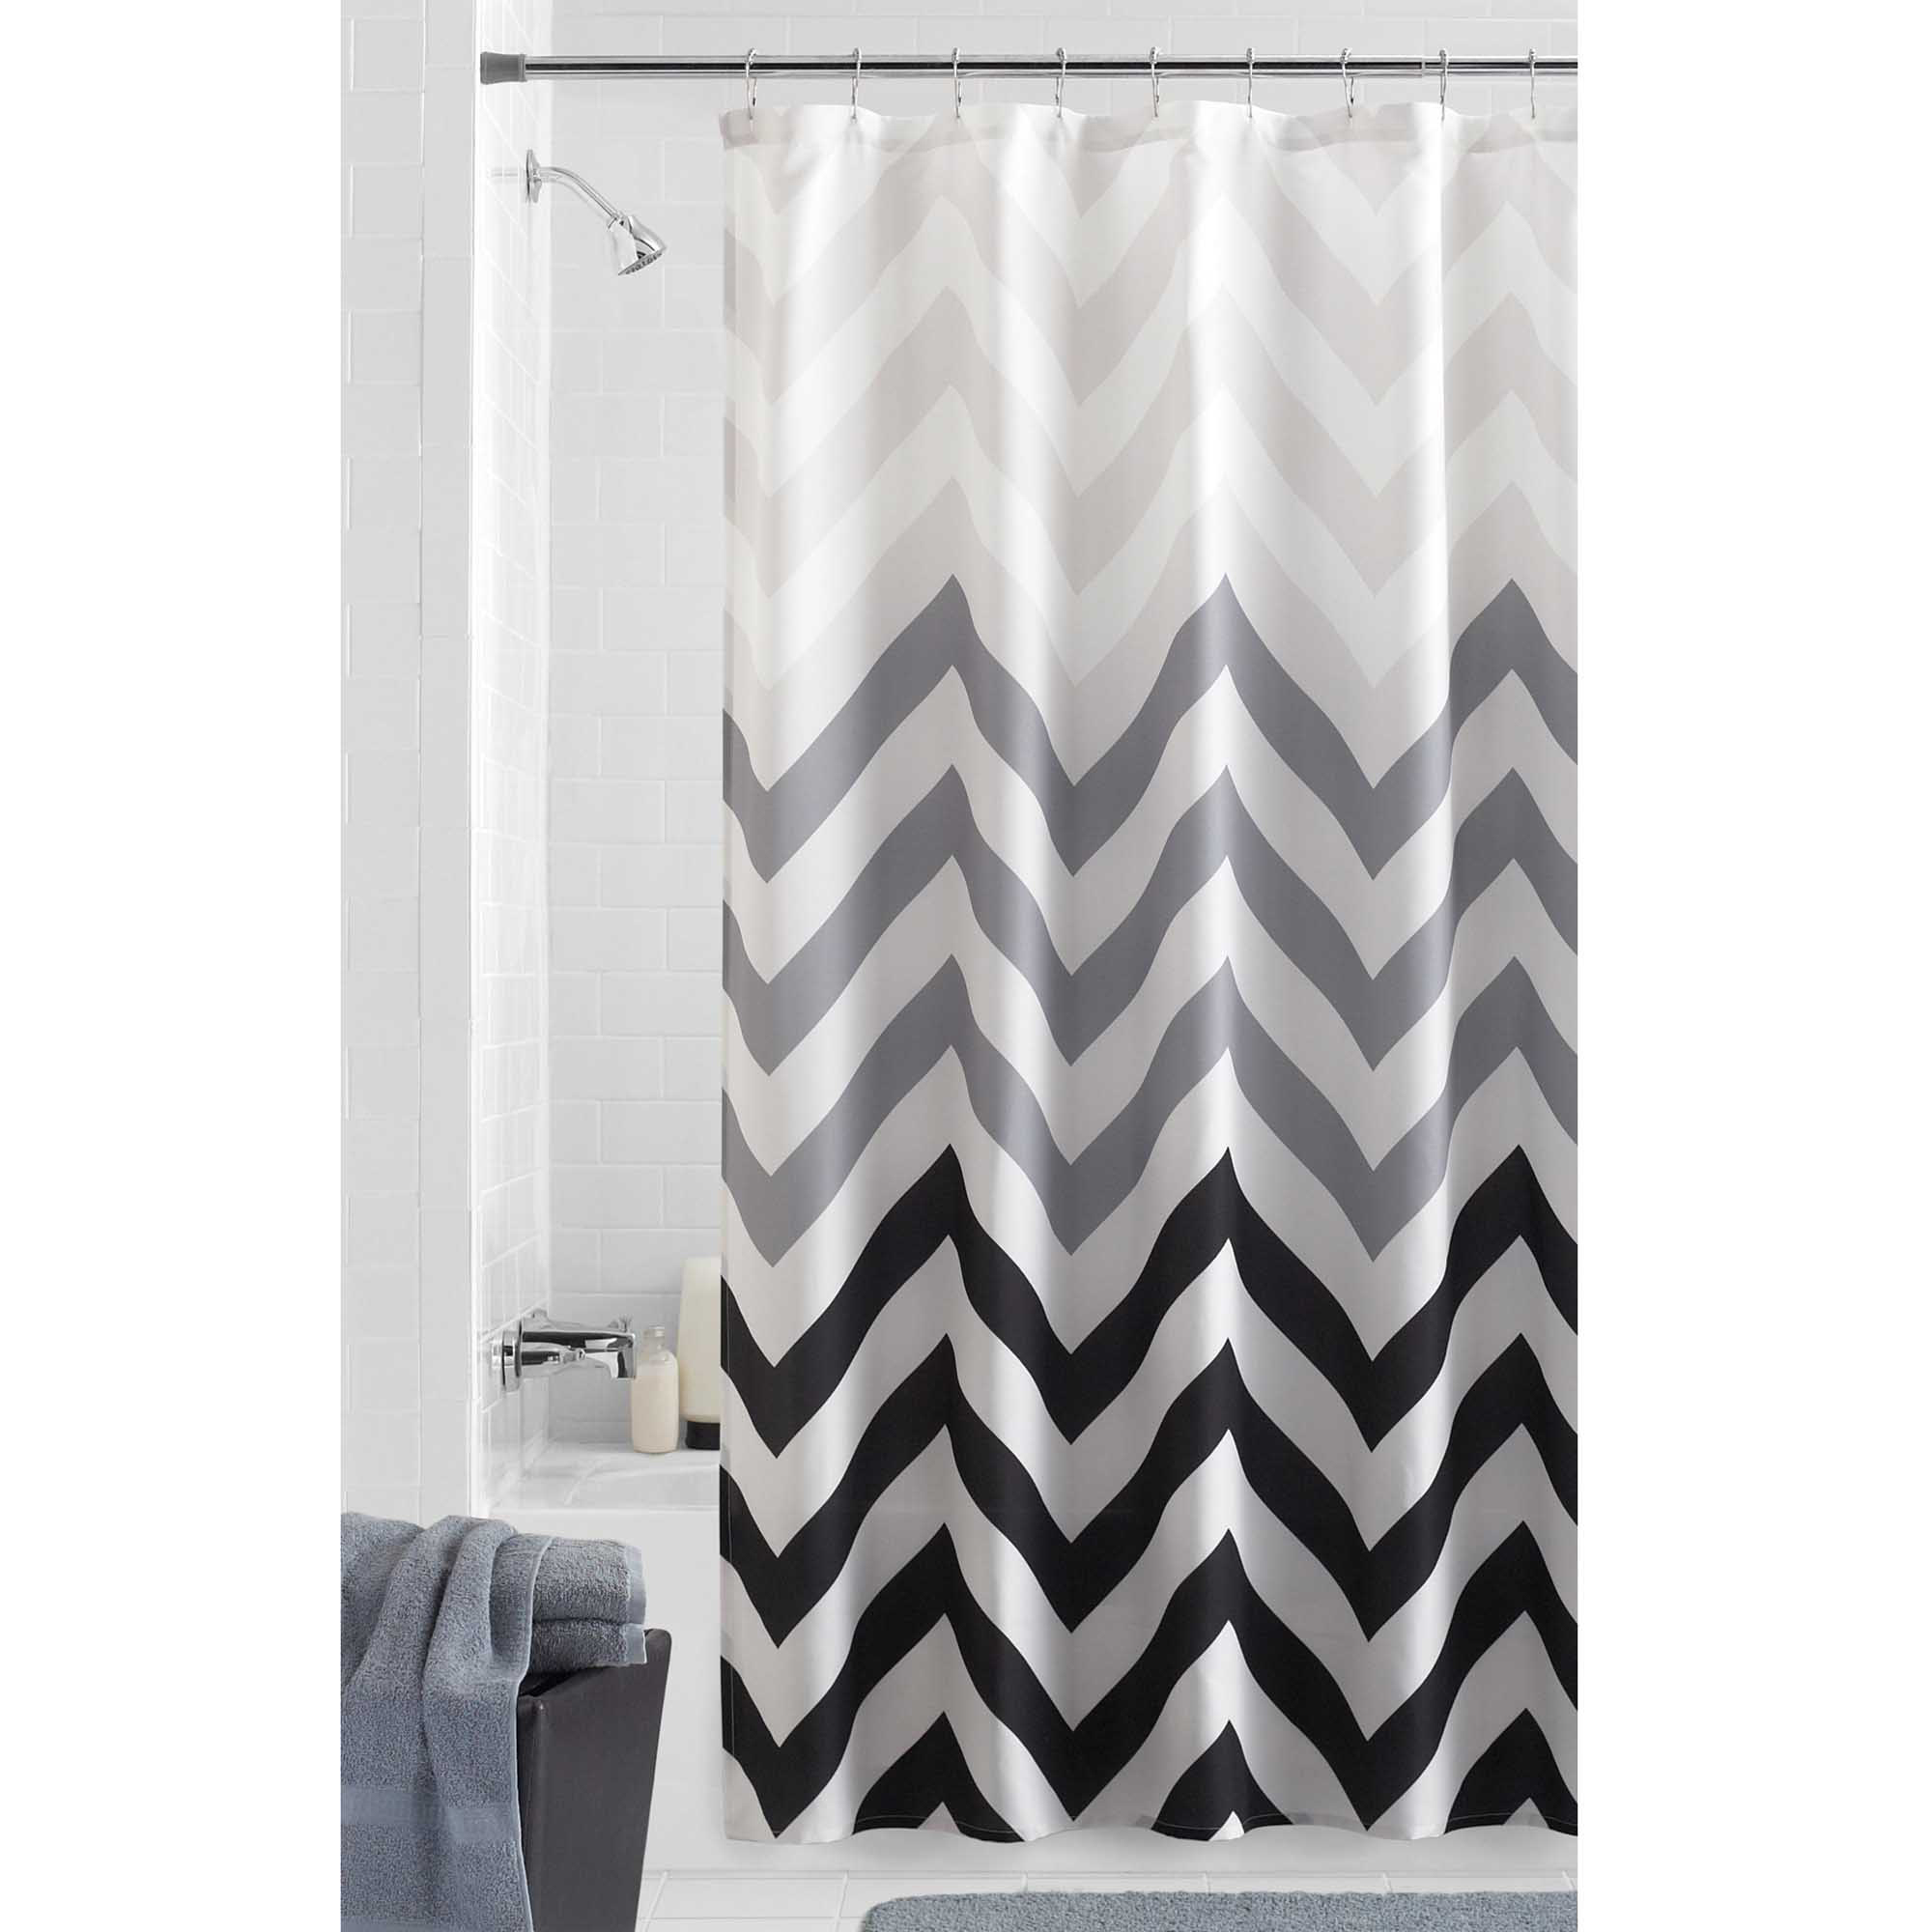 Mainstays Flux Fabric Shower Curtain